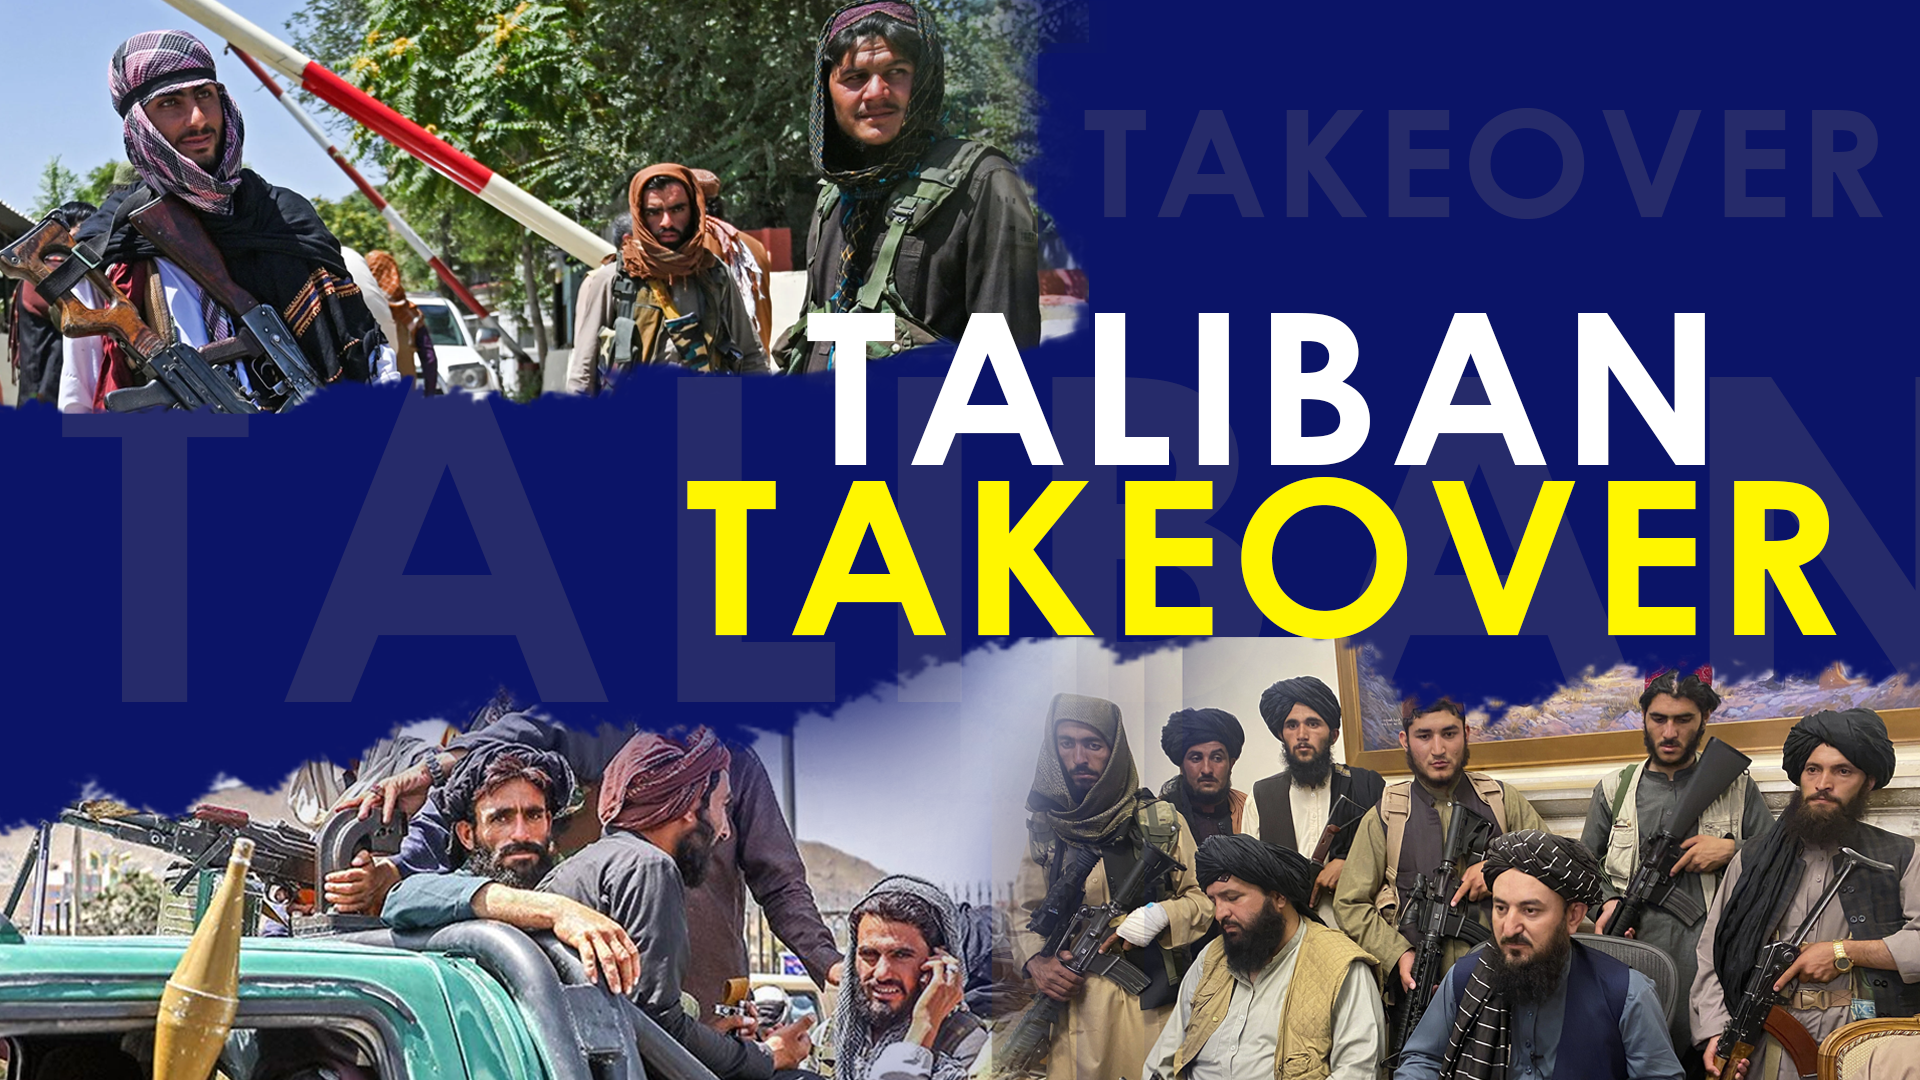 Taliban takeover of Afghanistan